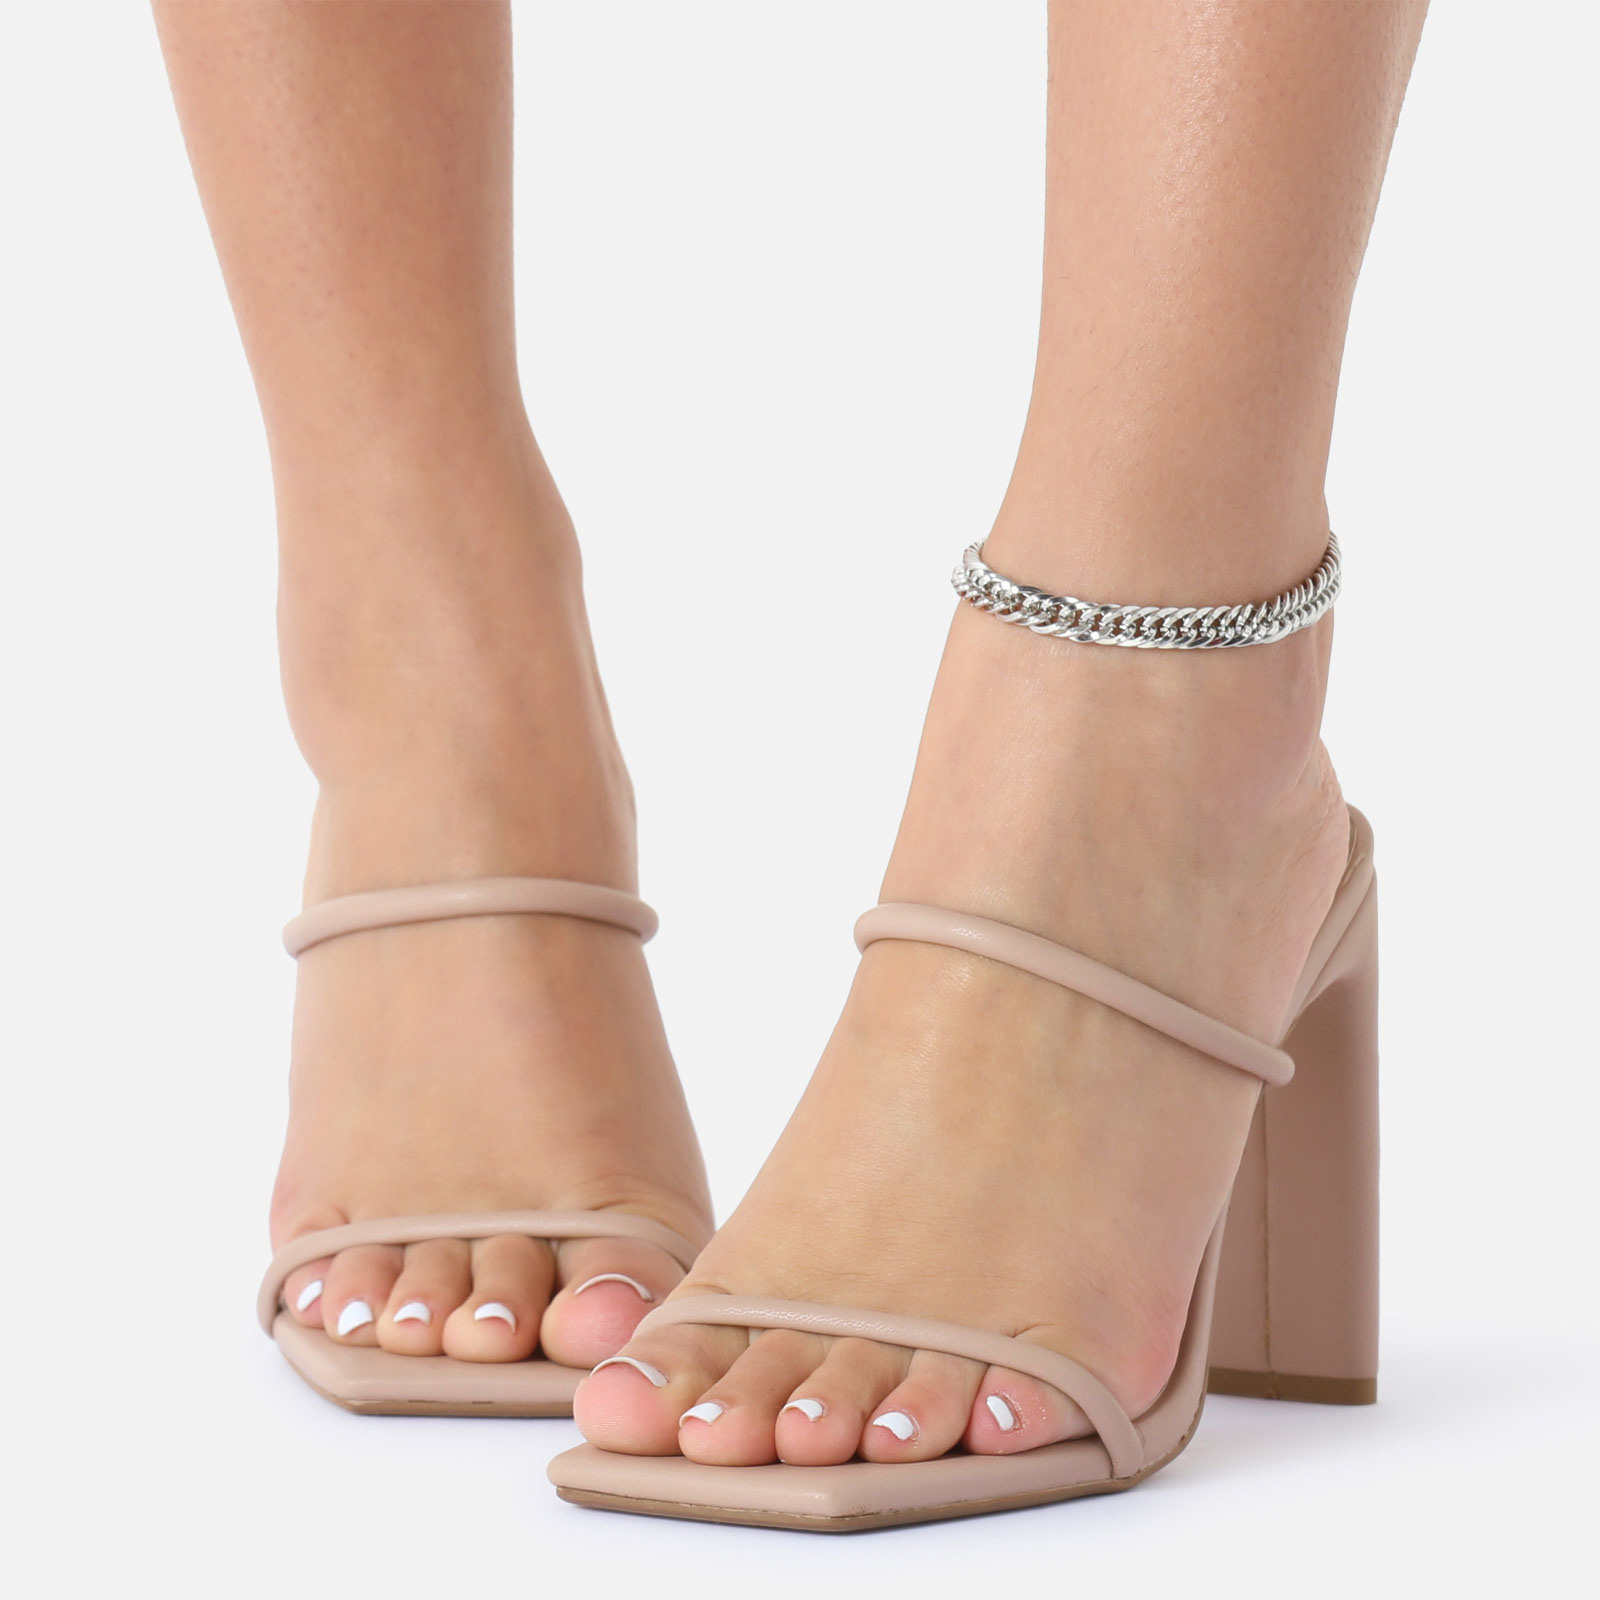 Delicate Chain Anklet In Silver